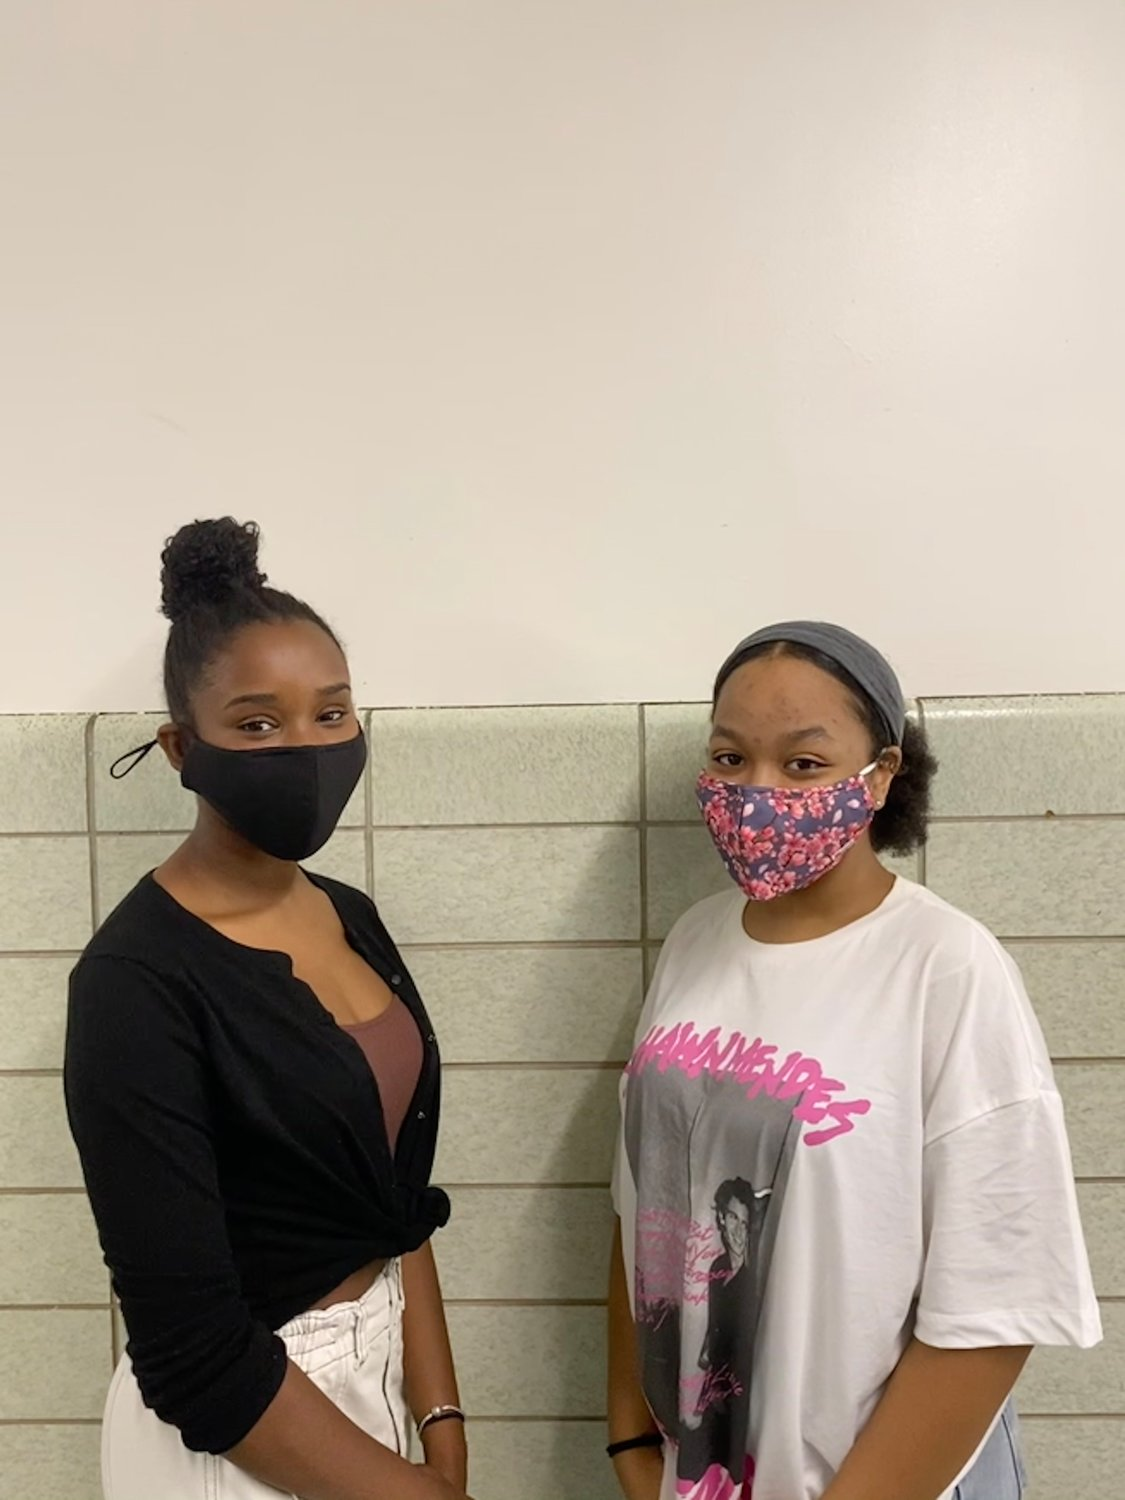 Eden Gould-Anderson, left, and Joan Mesy, seniors at Sanford H. Calhoun High School, started the Racial Equity Club to share their perspectives as students of color.